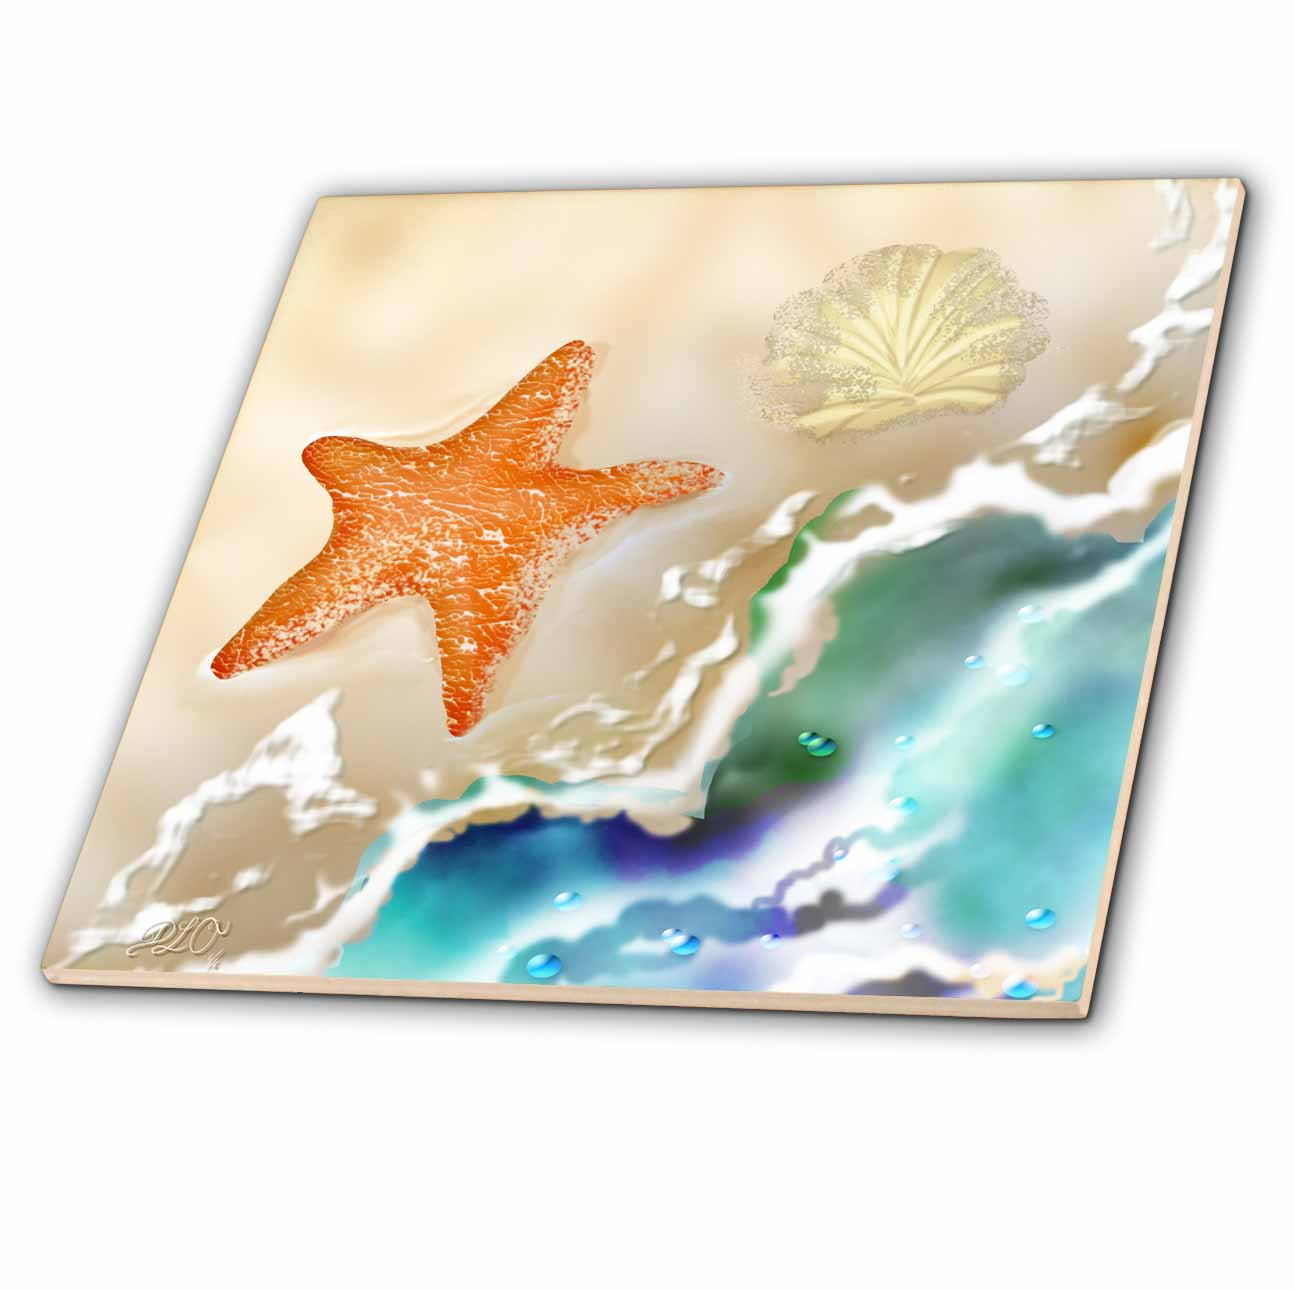 3dRose Starfish and Seashell in the Sand near the Ocean Art - Ceramic Tile, 6-inch